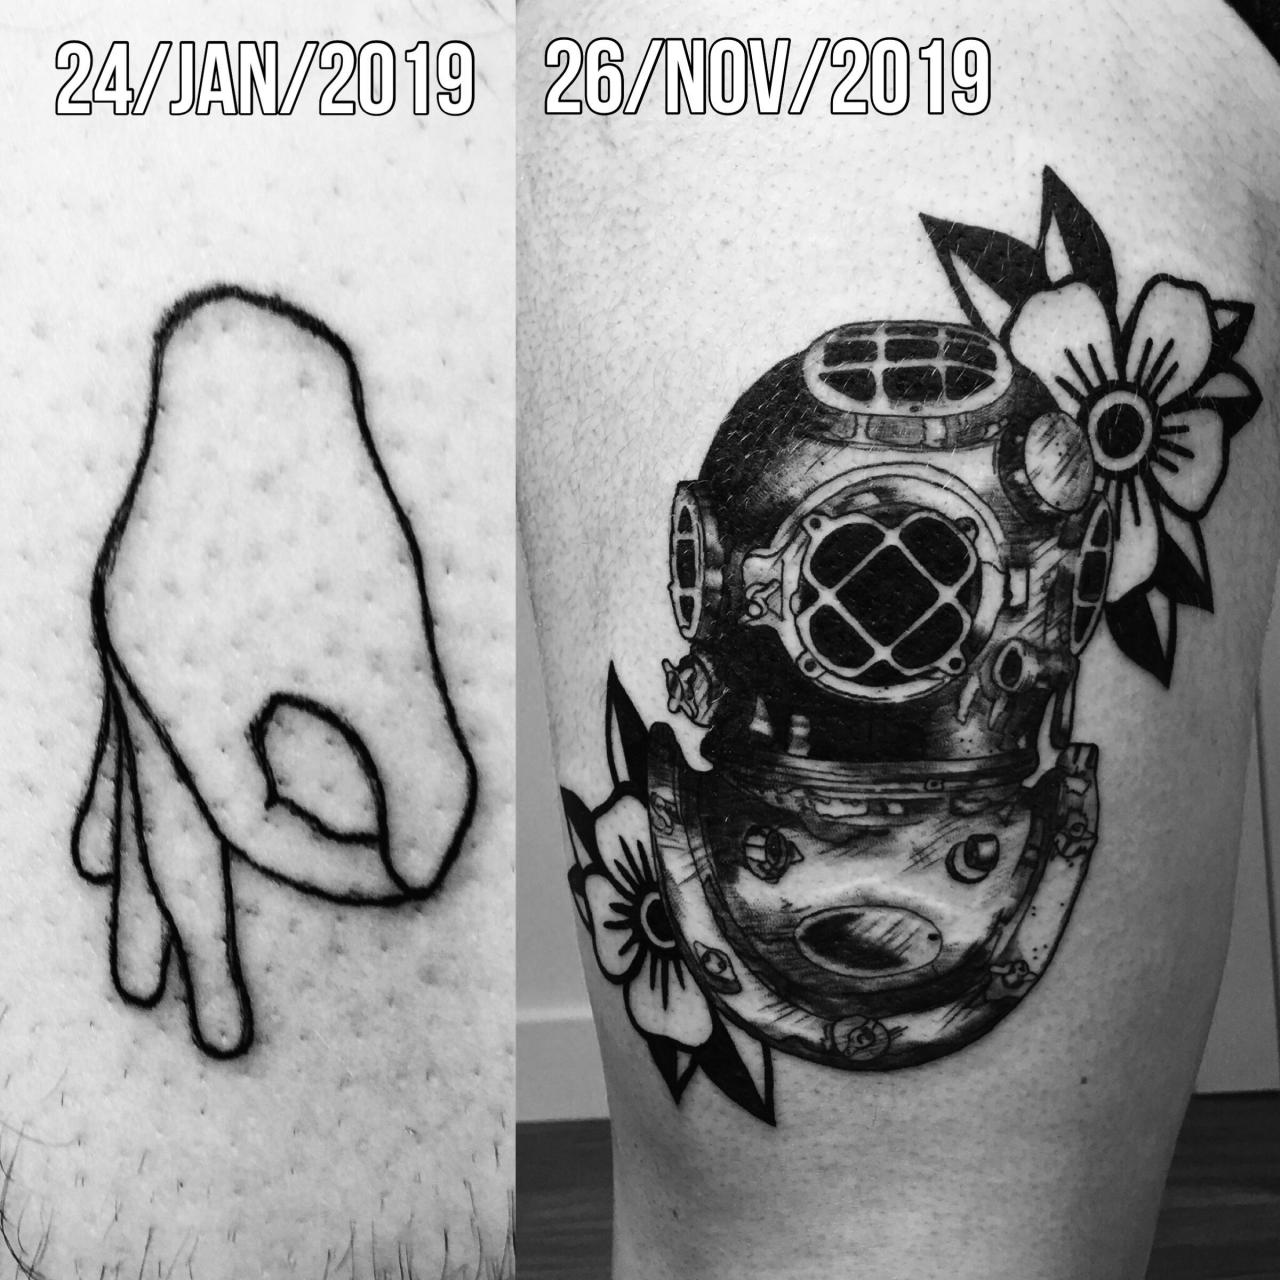 Here's the first and latest tattoo I made! Not perfect but I'm getting a little bit better.